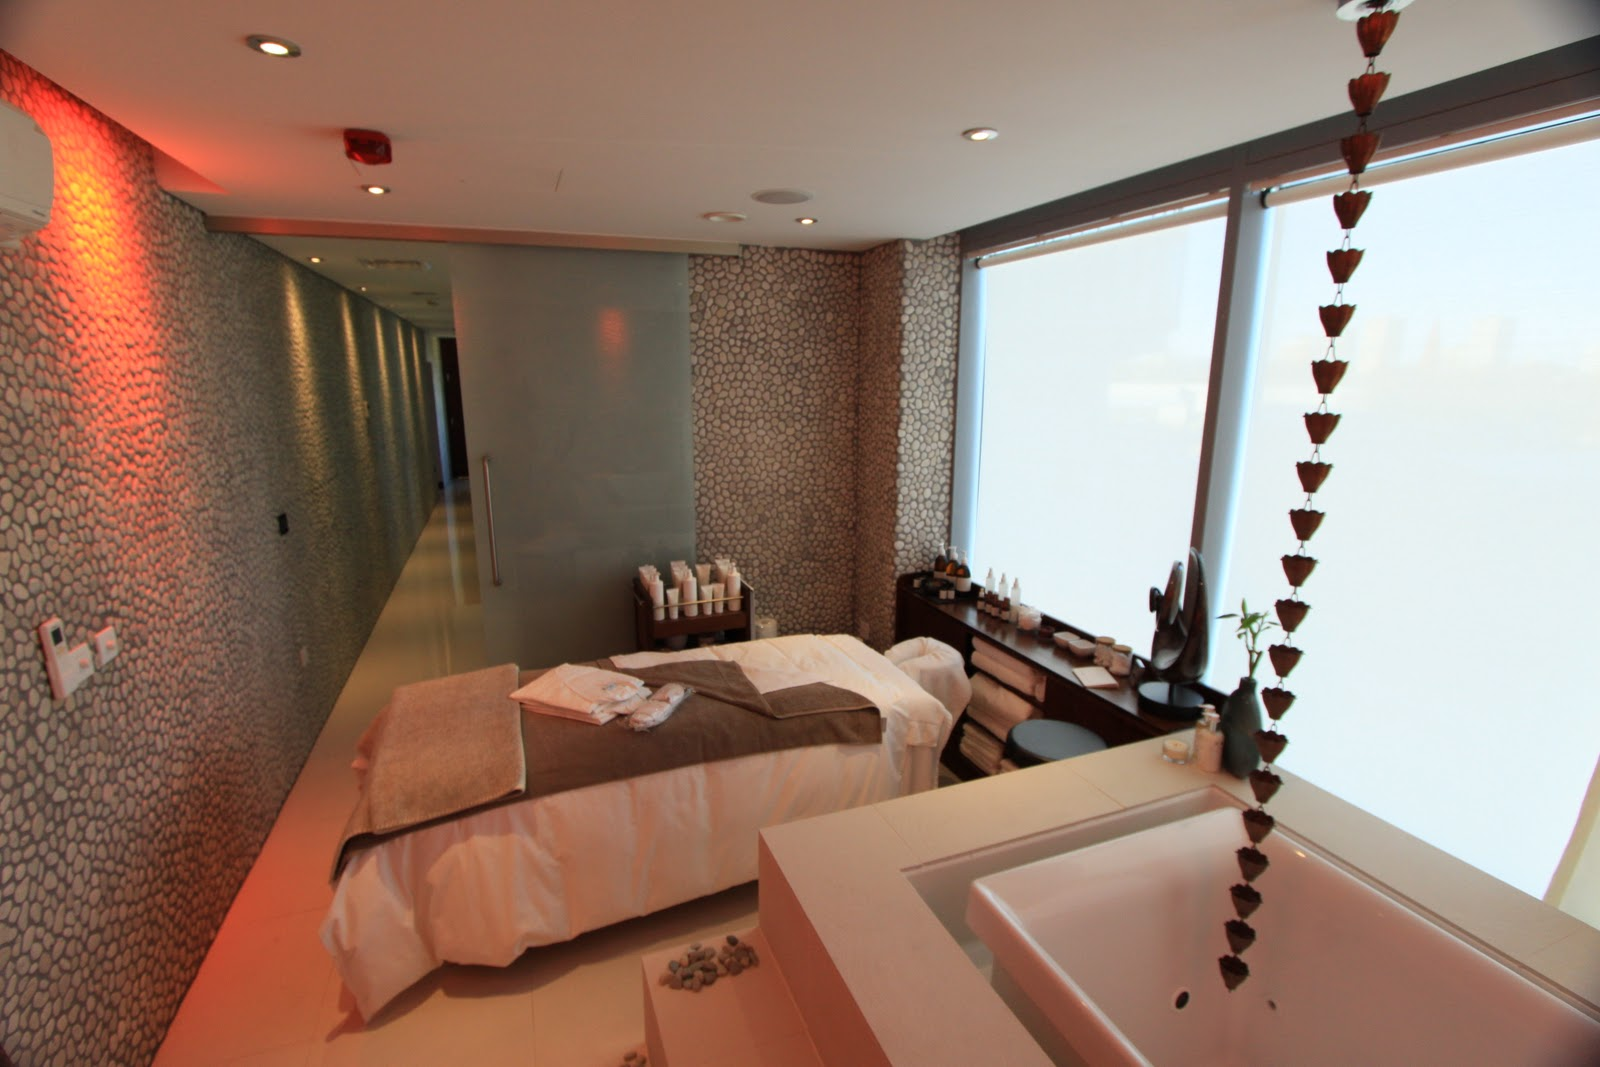 Relaxing Rooms Enchanting With Spa Relaxation Room Picture